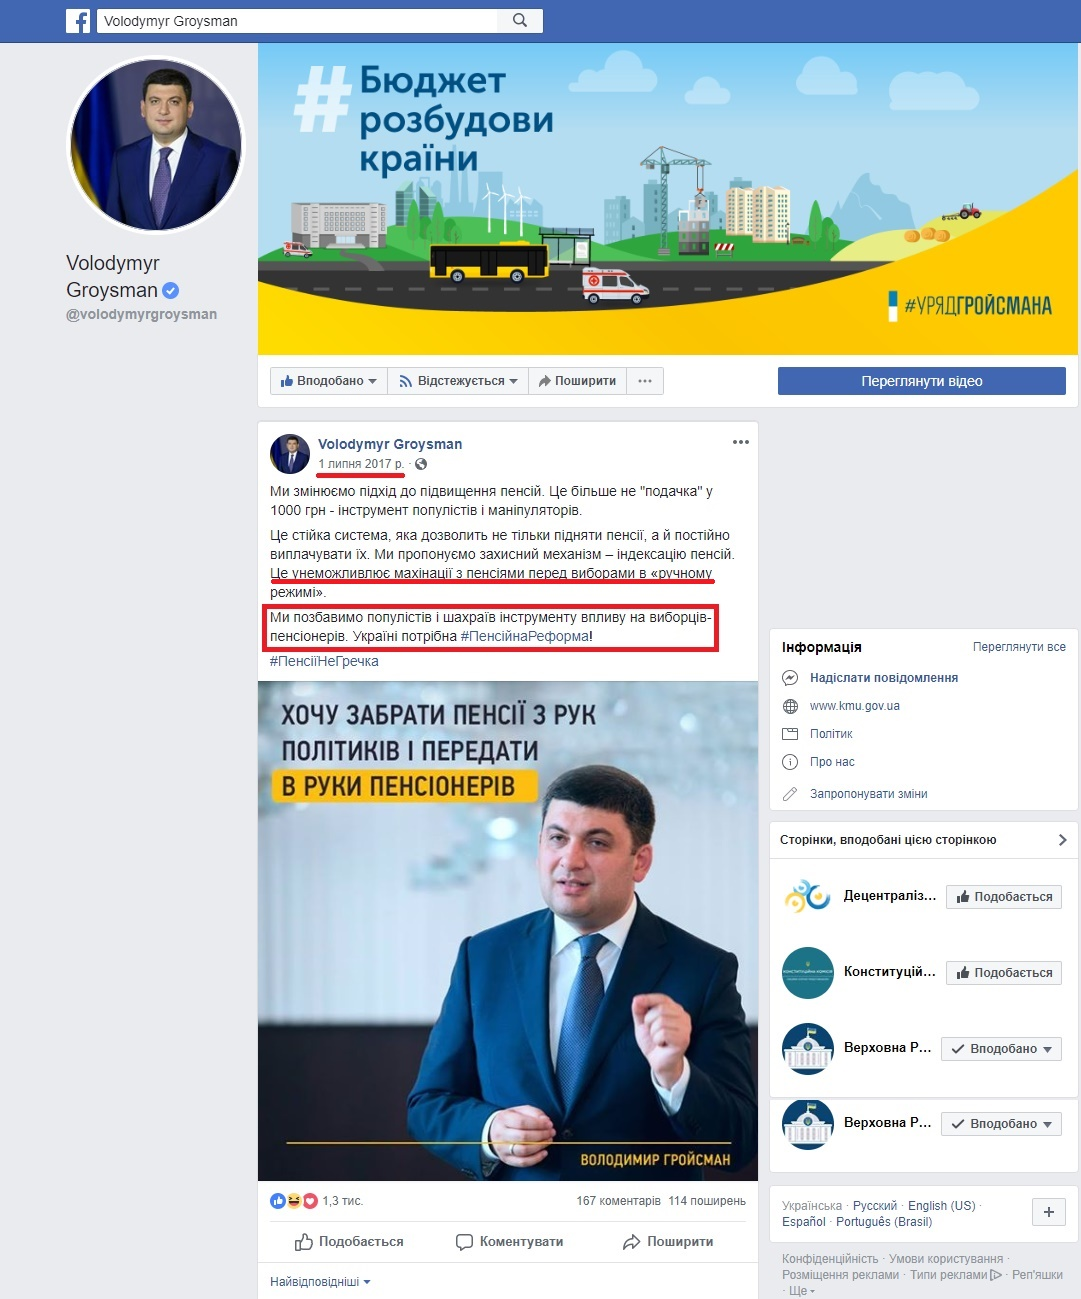 https://www.facebook.com/volodymyrgroysman/posts/569299906572261:0